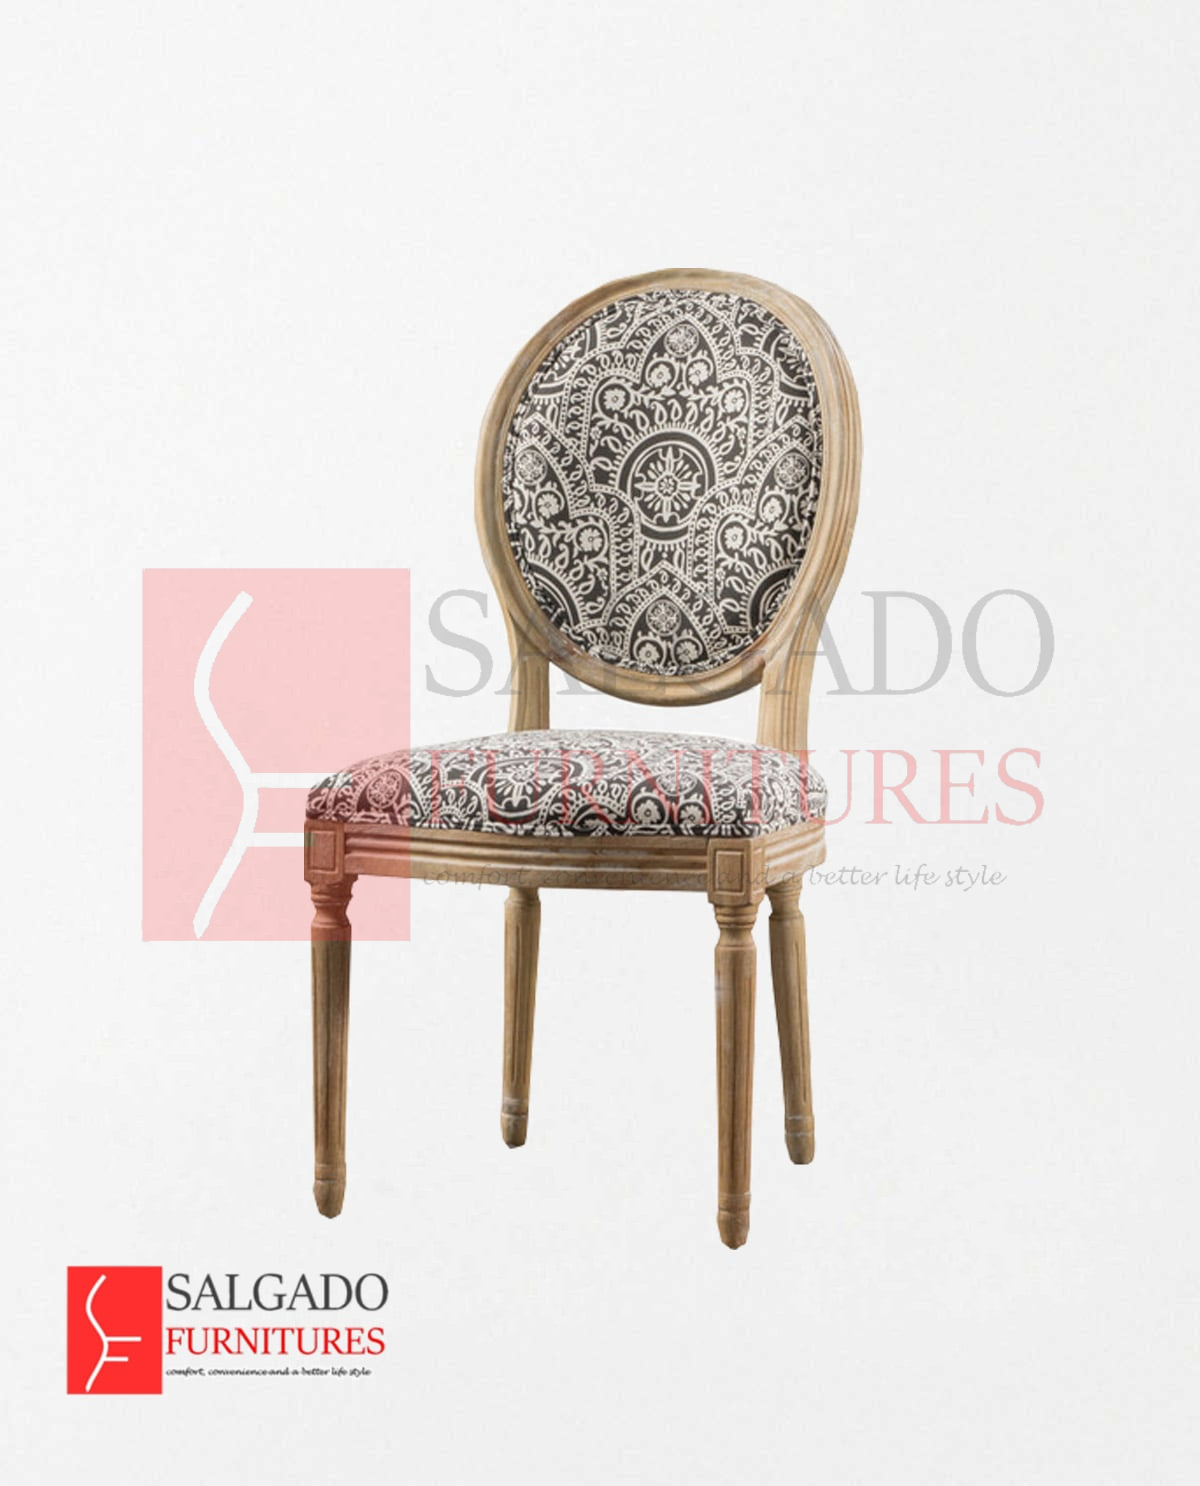 Enjoyable Owal Round Black And White Patterned Fabric Salgado Dailytribune Chair Design For Home Dailytribuneorg